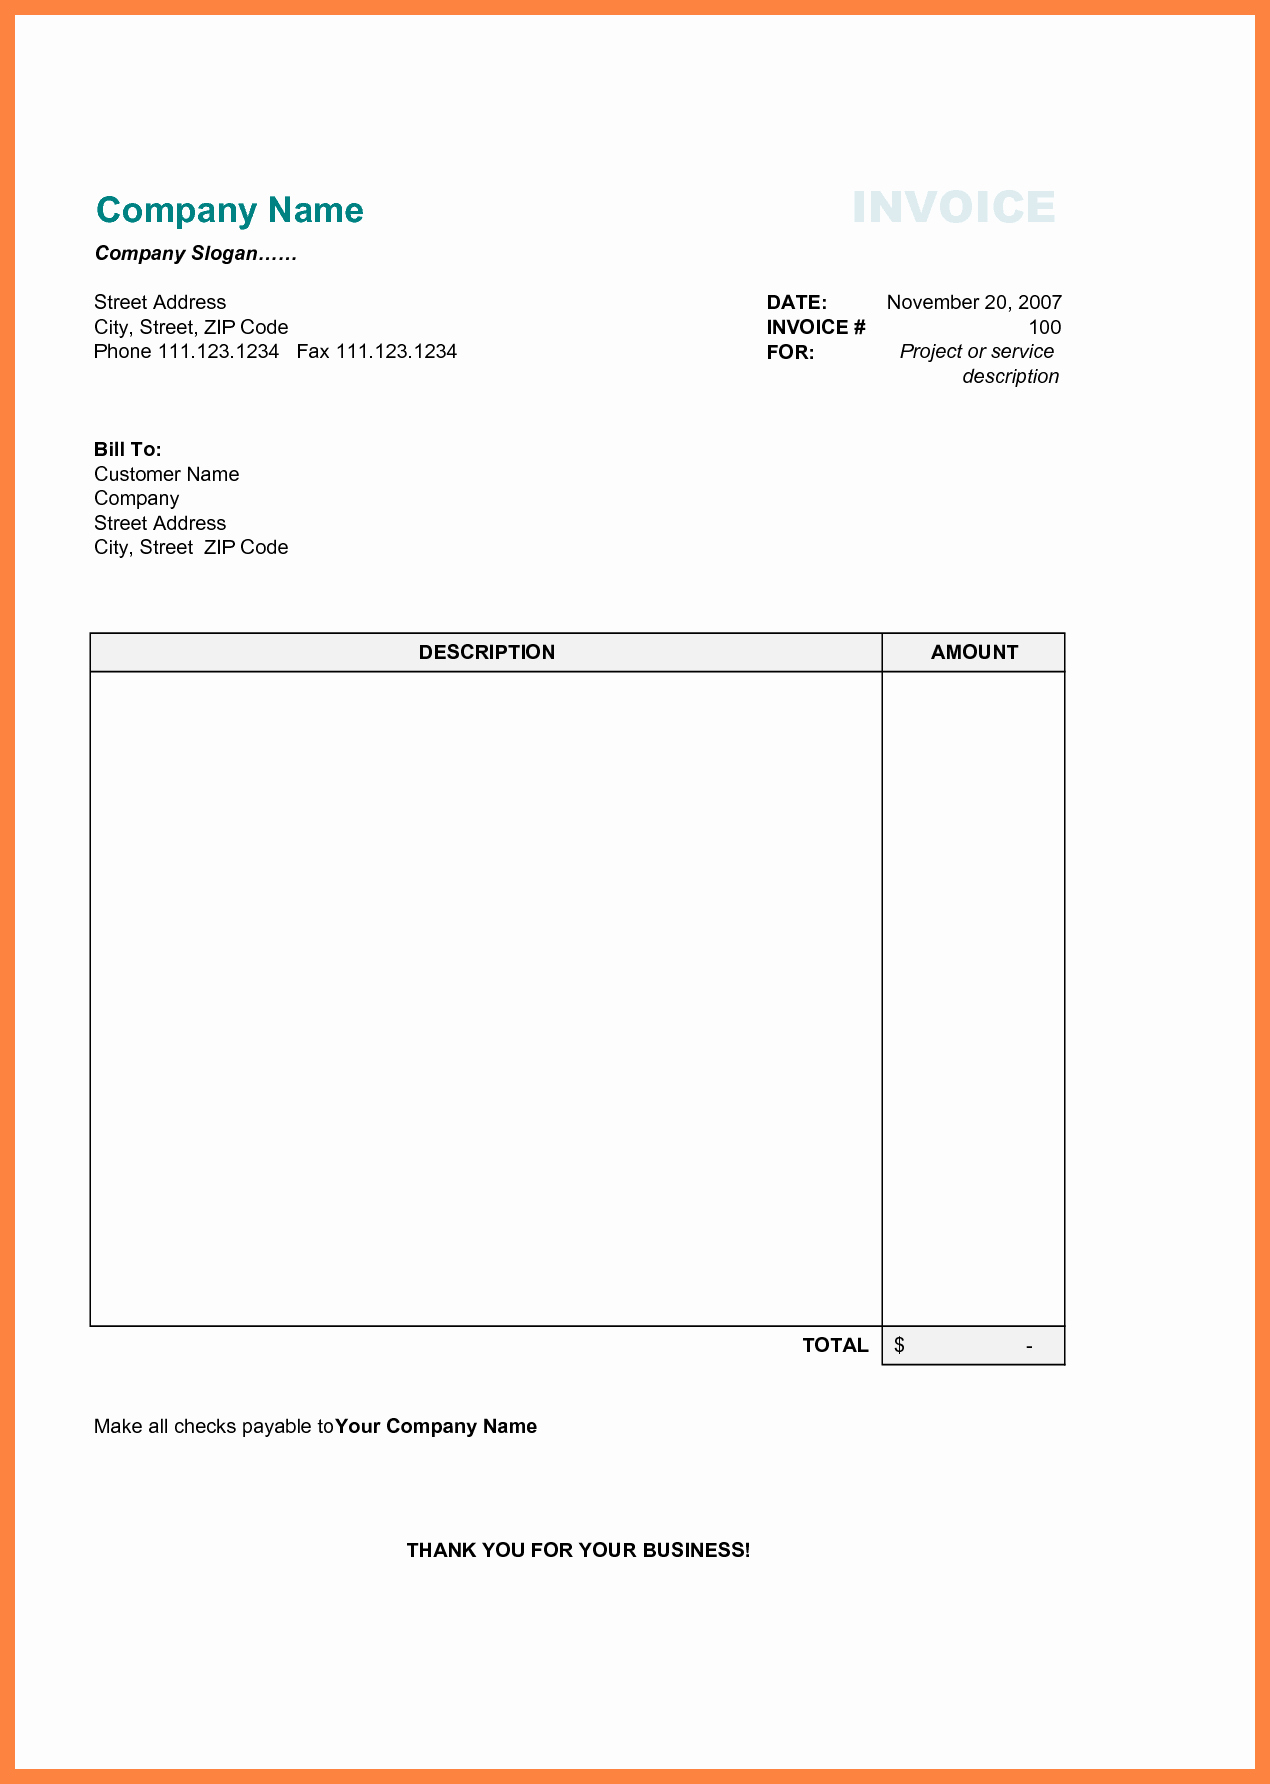 Free Blank Invoice Beautiful Free Printable Business Invoice Template Invoice format